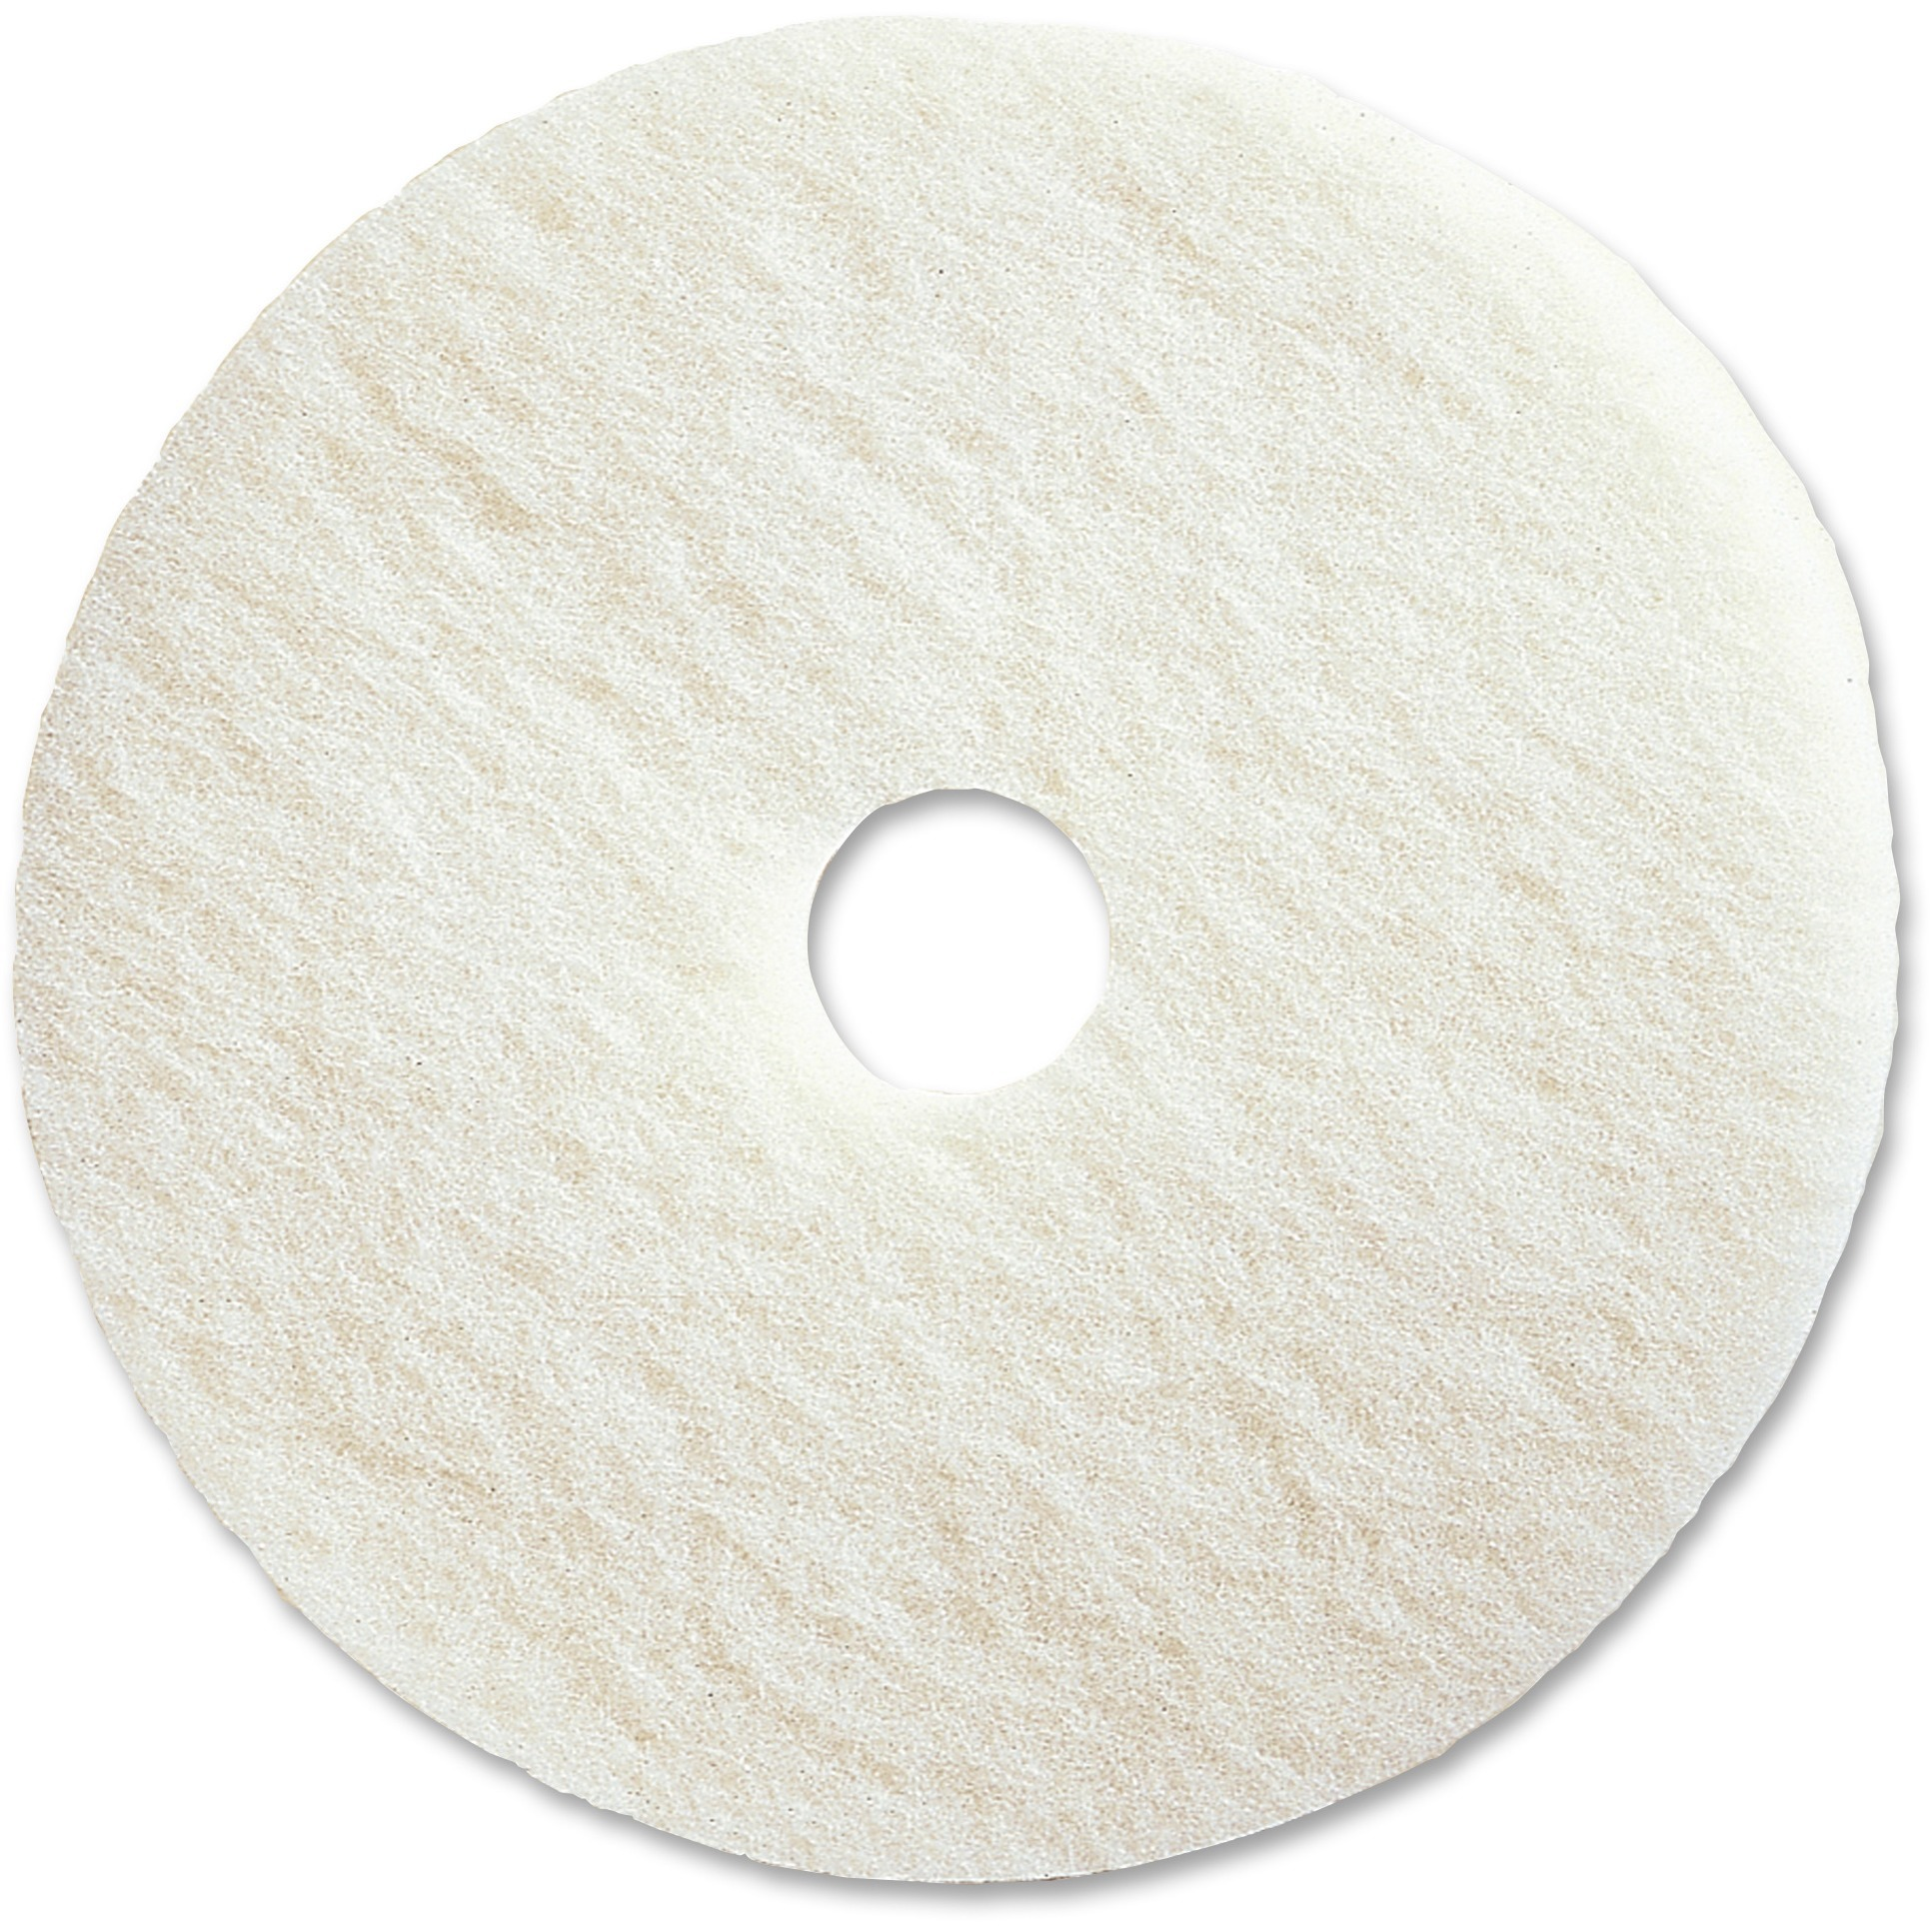 Genuine Joe, GJO90517, Polishing Floor Pad, 5 / Carton, White